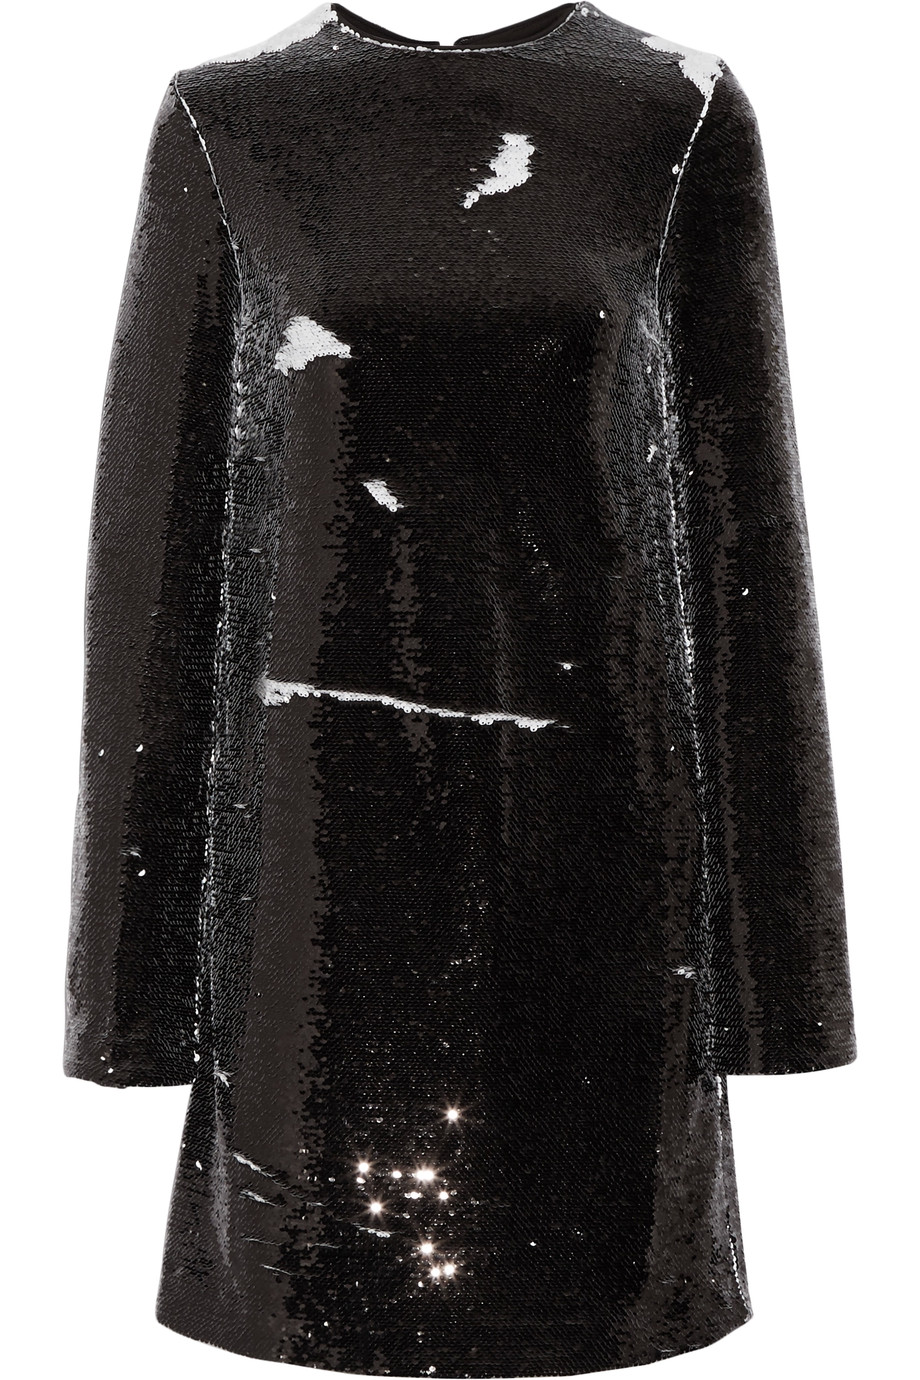 Msgm Linings Sequined crepe mini dress